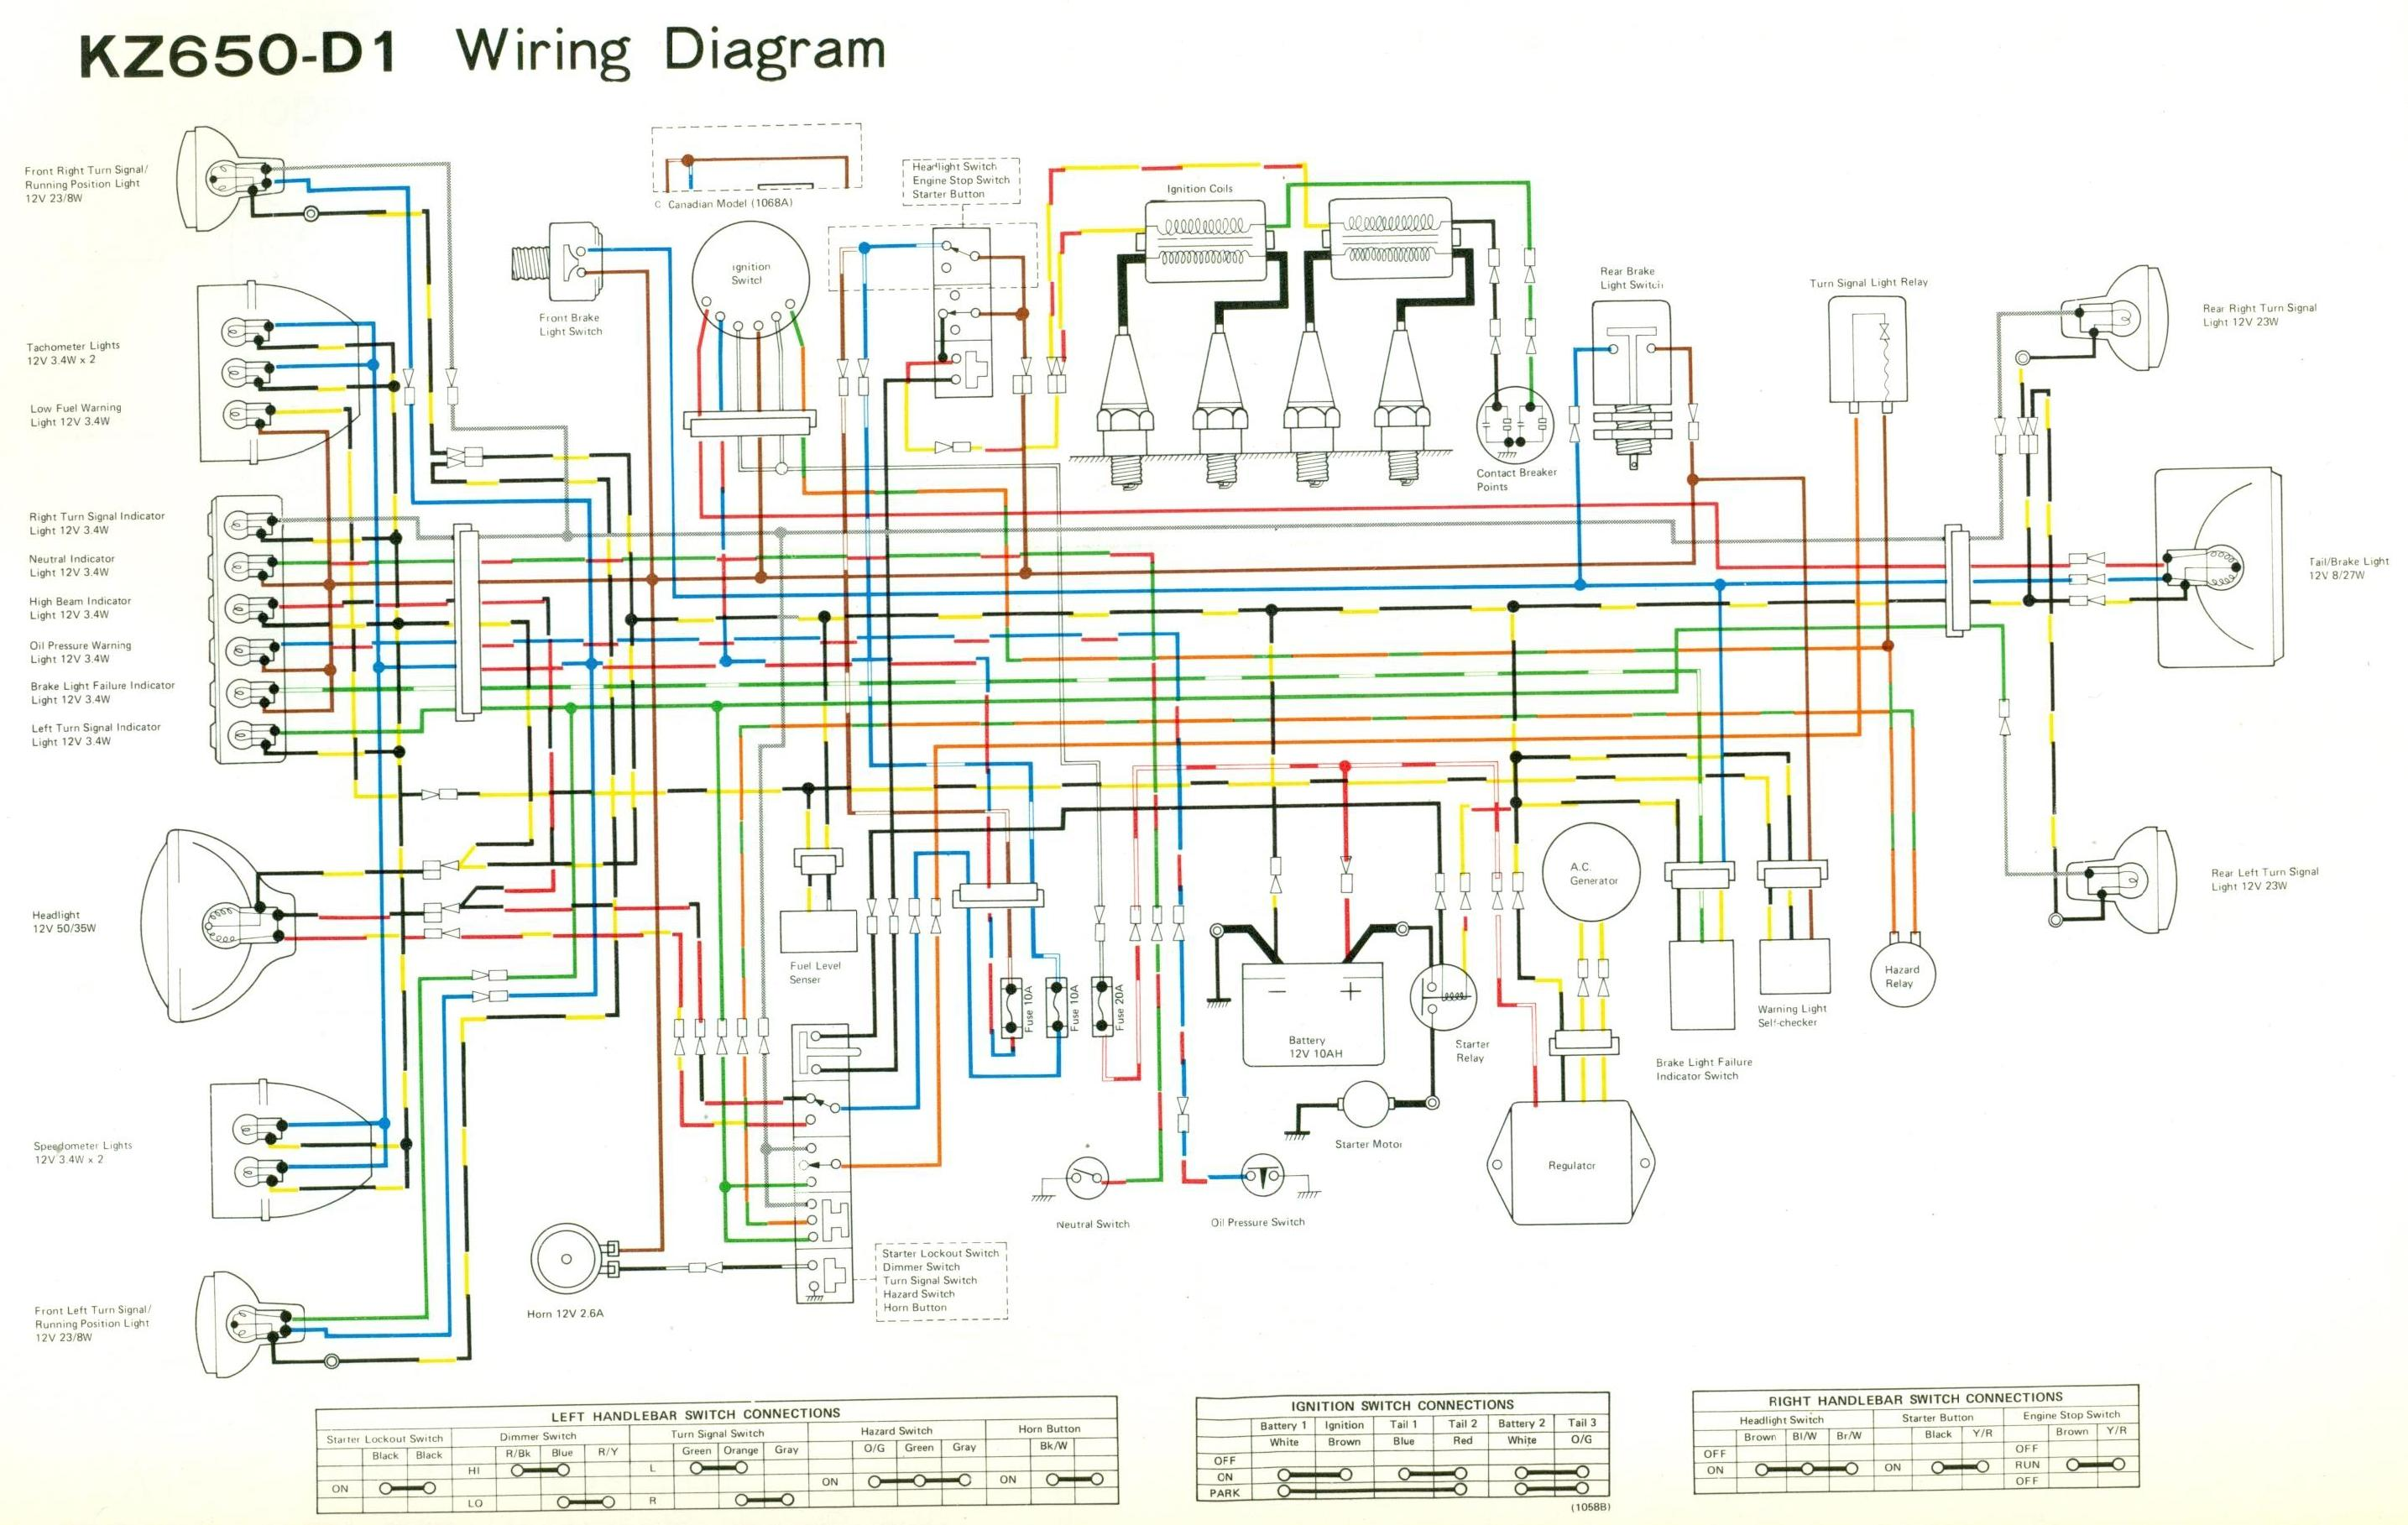 Kawasaki Kz440 Wiring Diagram And Schematics Symbols Chart Diagrams Rh Oregonmotorcycleparts Com 1982 2013 Ninja